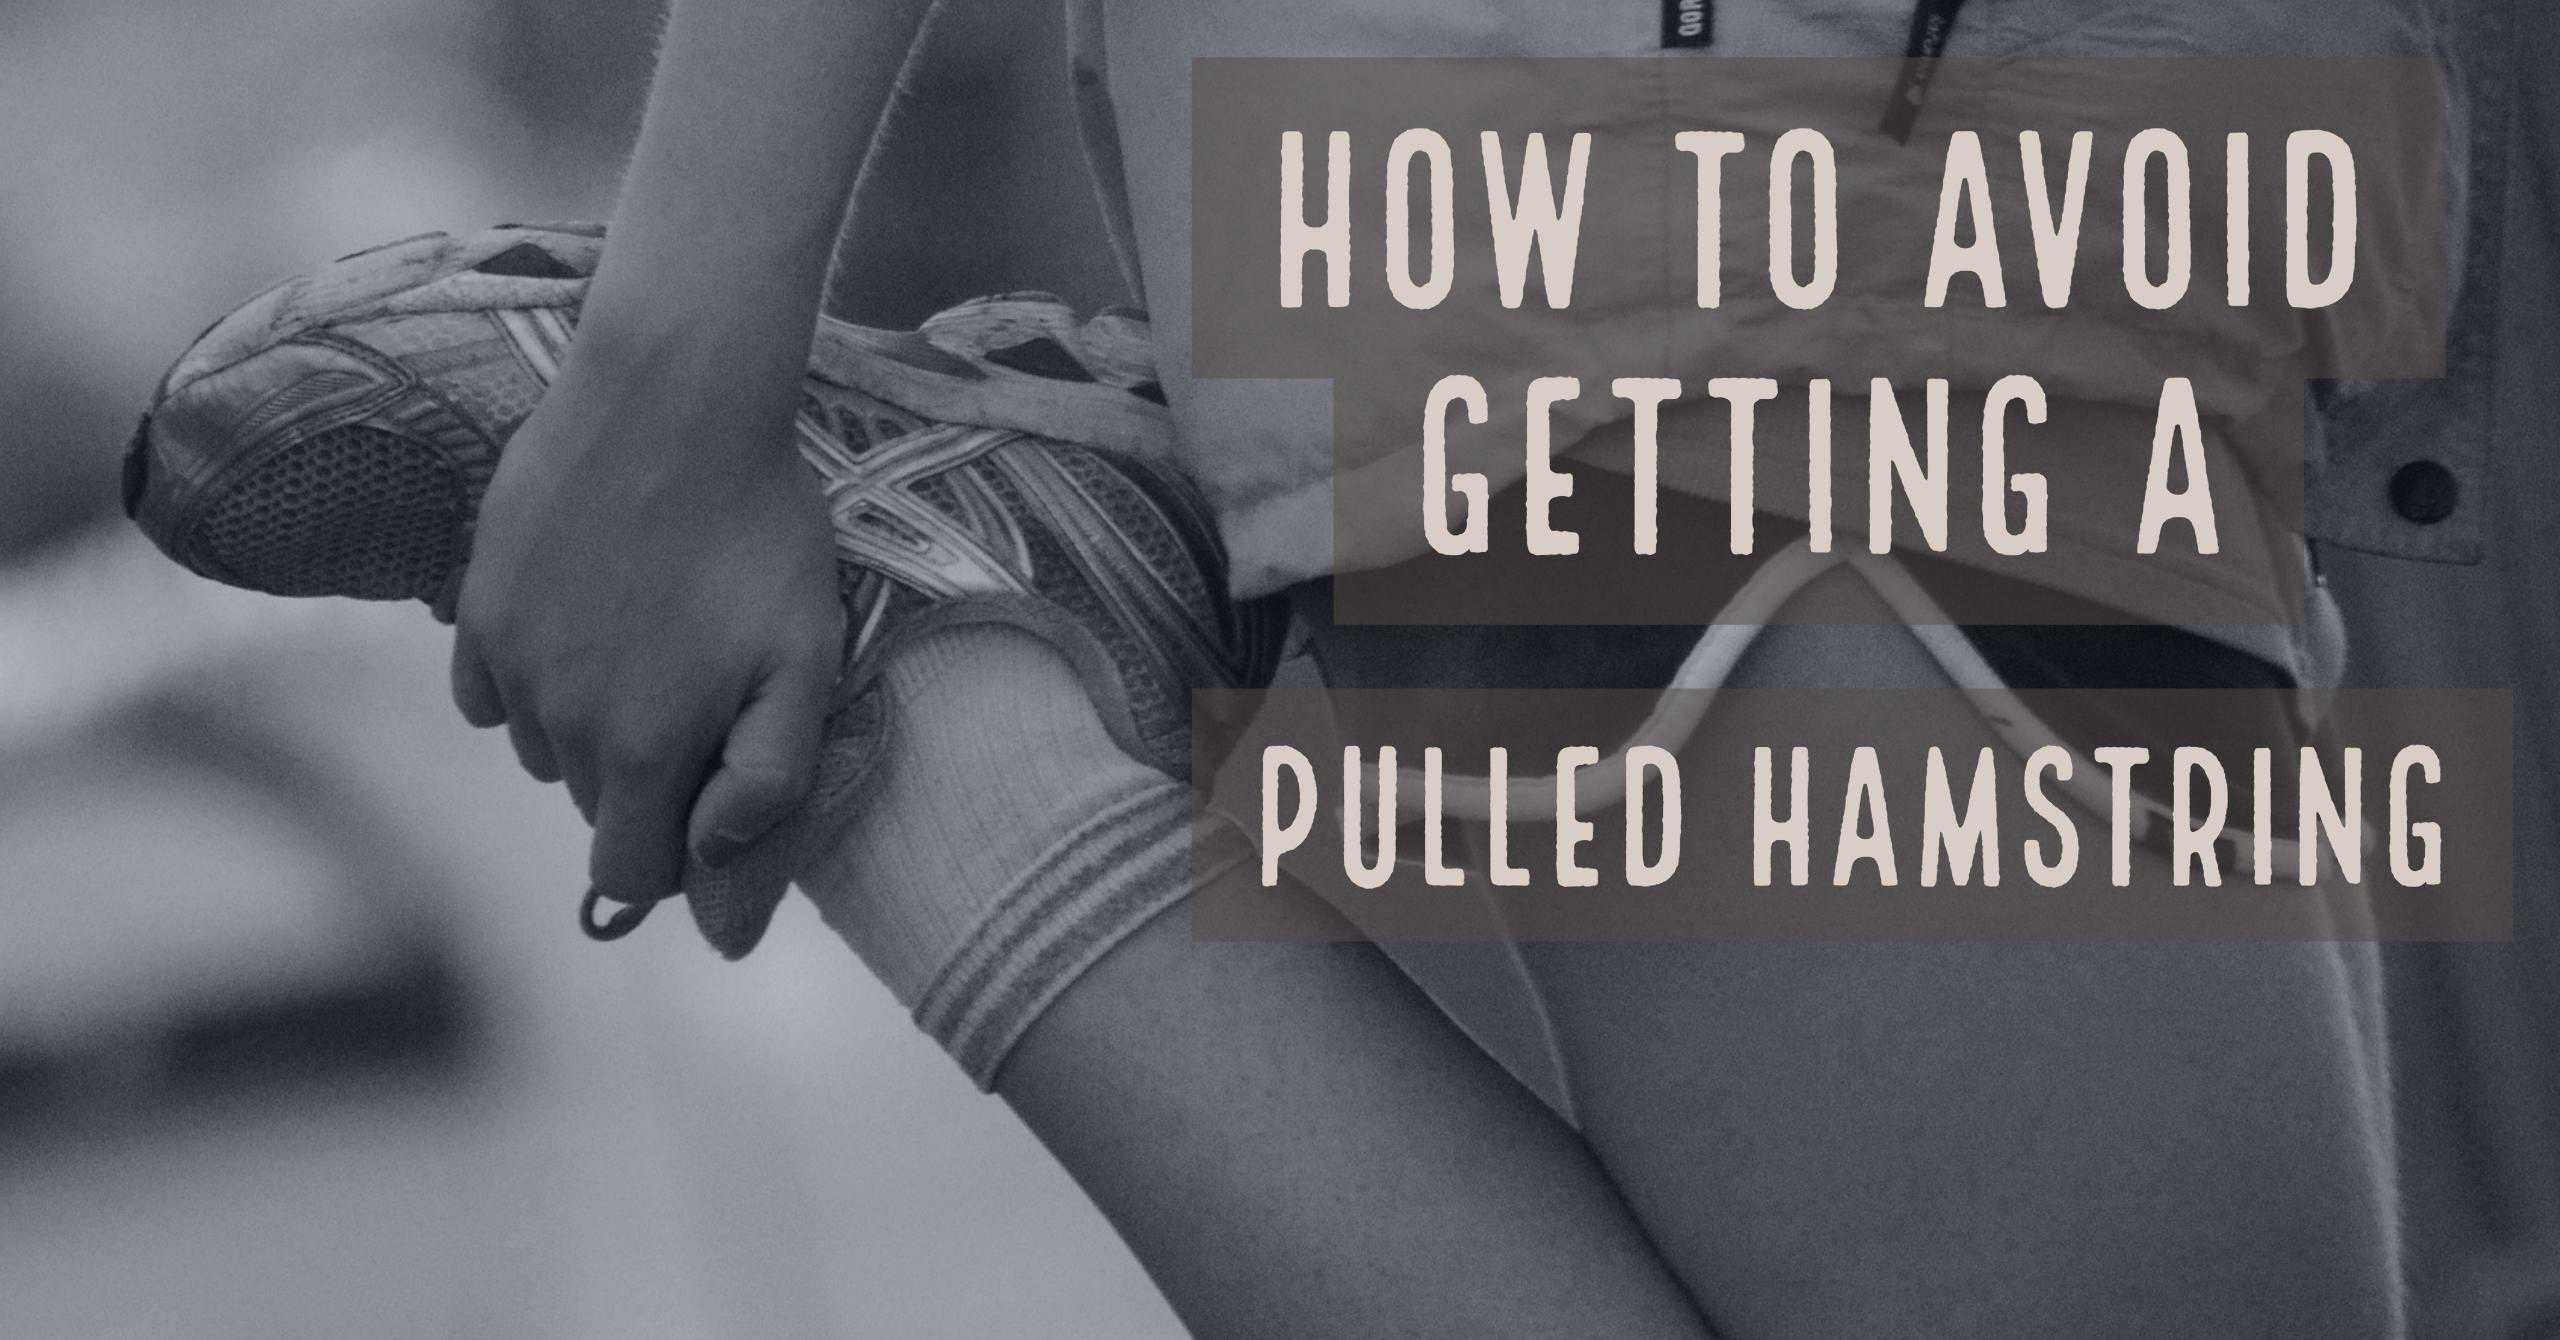 How to avoid getting a pulled hamstring